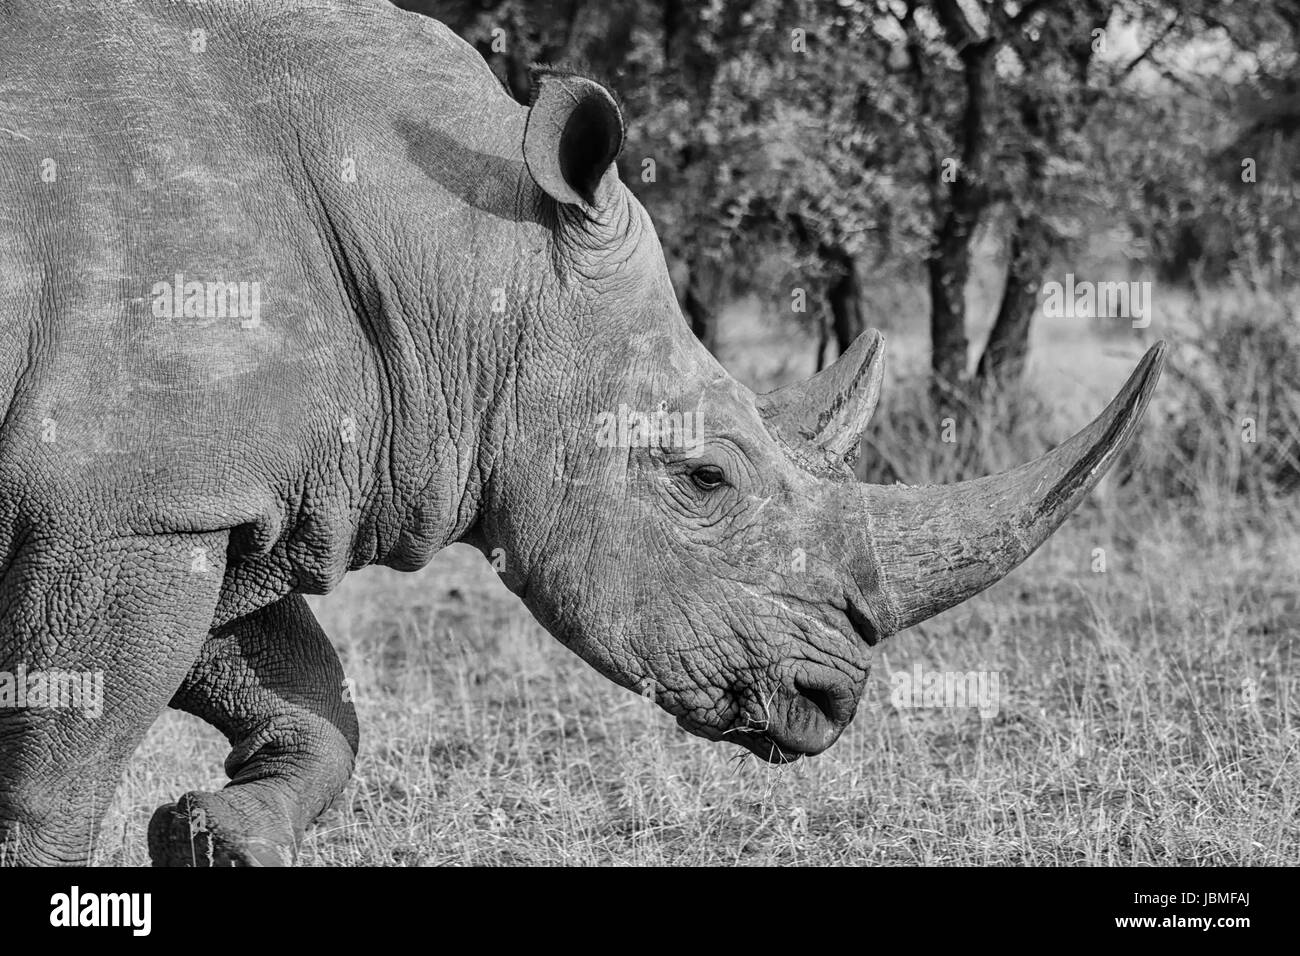 Adult White Rhino in Southern African savanna Stock Photo